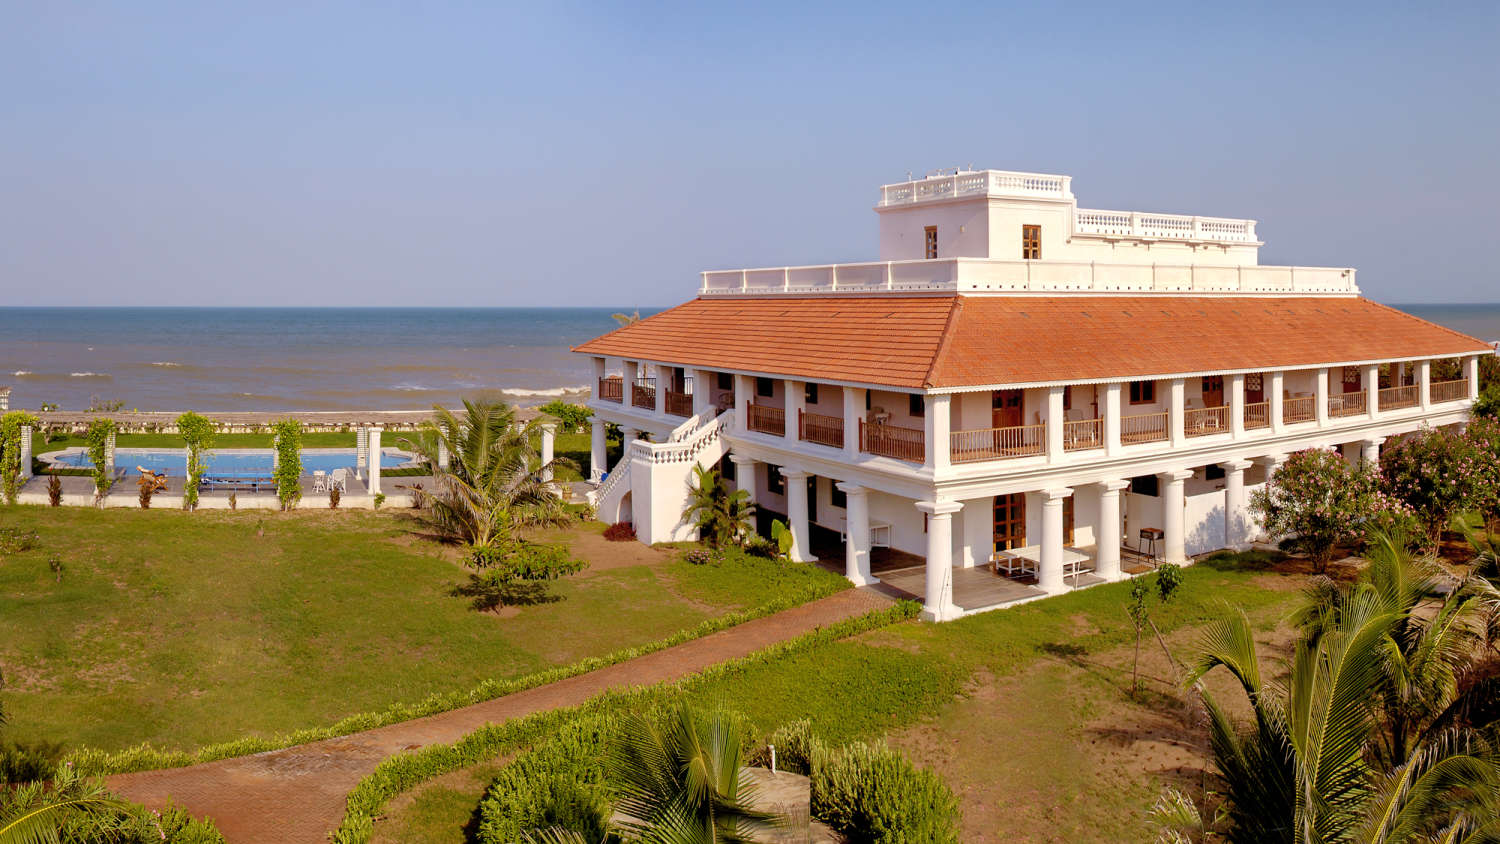 The Bungalow on the Beach - Tranquebar Image